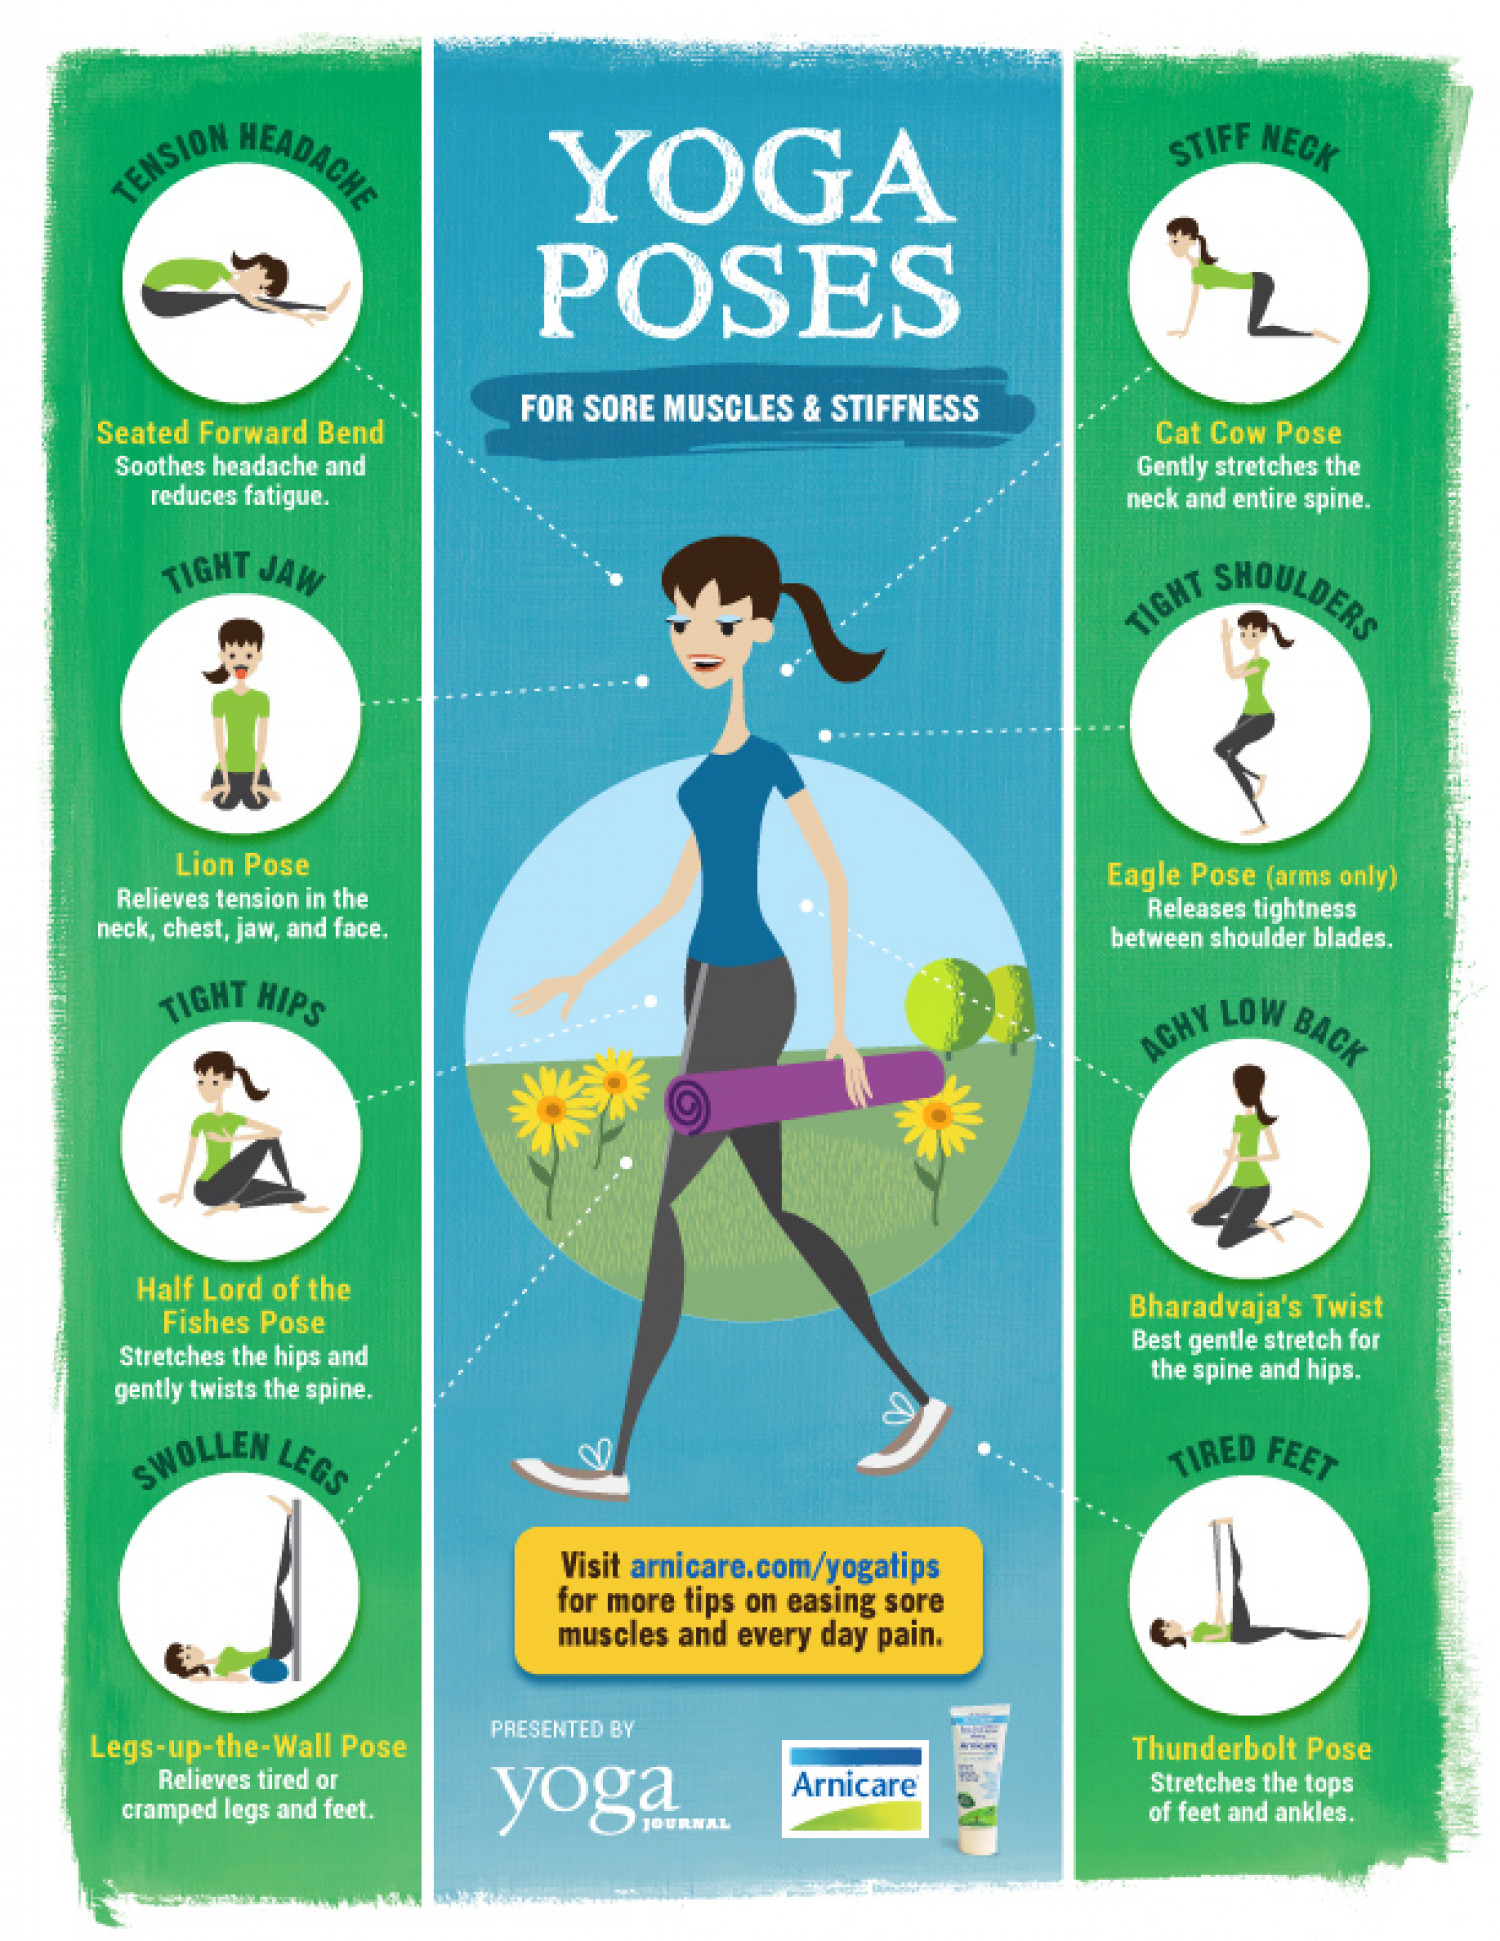 Yoga Poses For Sore Muscles & Stiffness Infographic